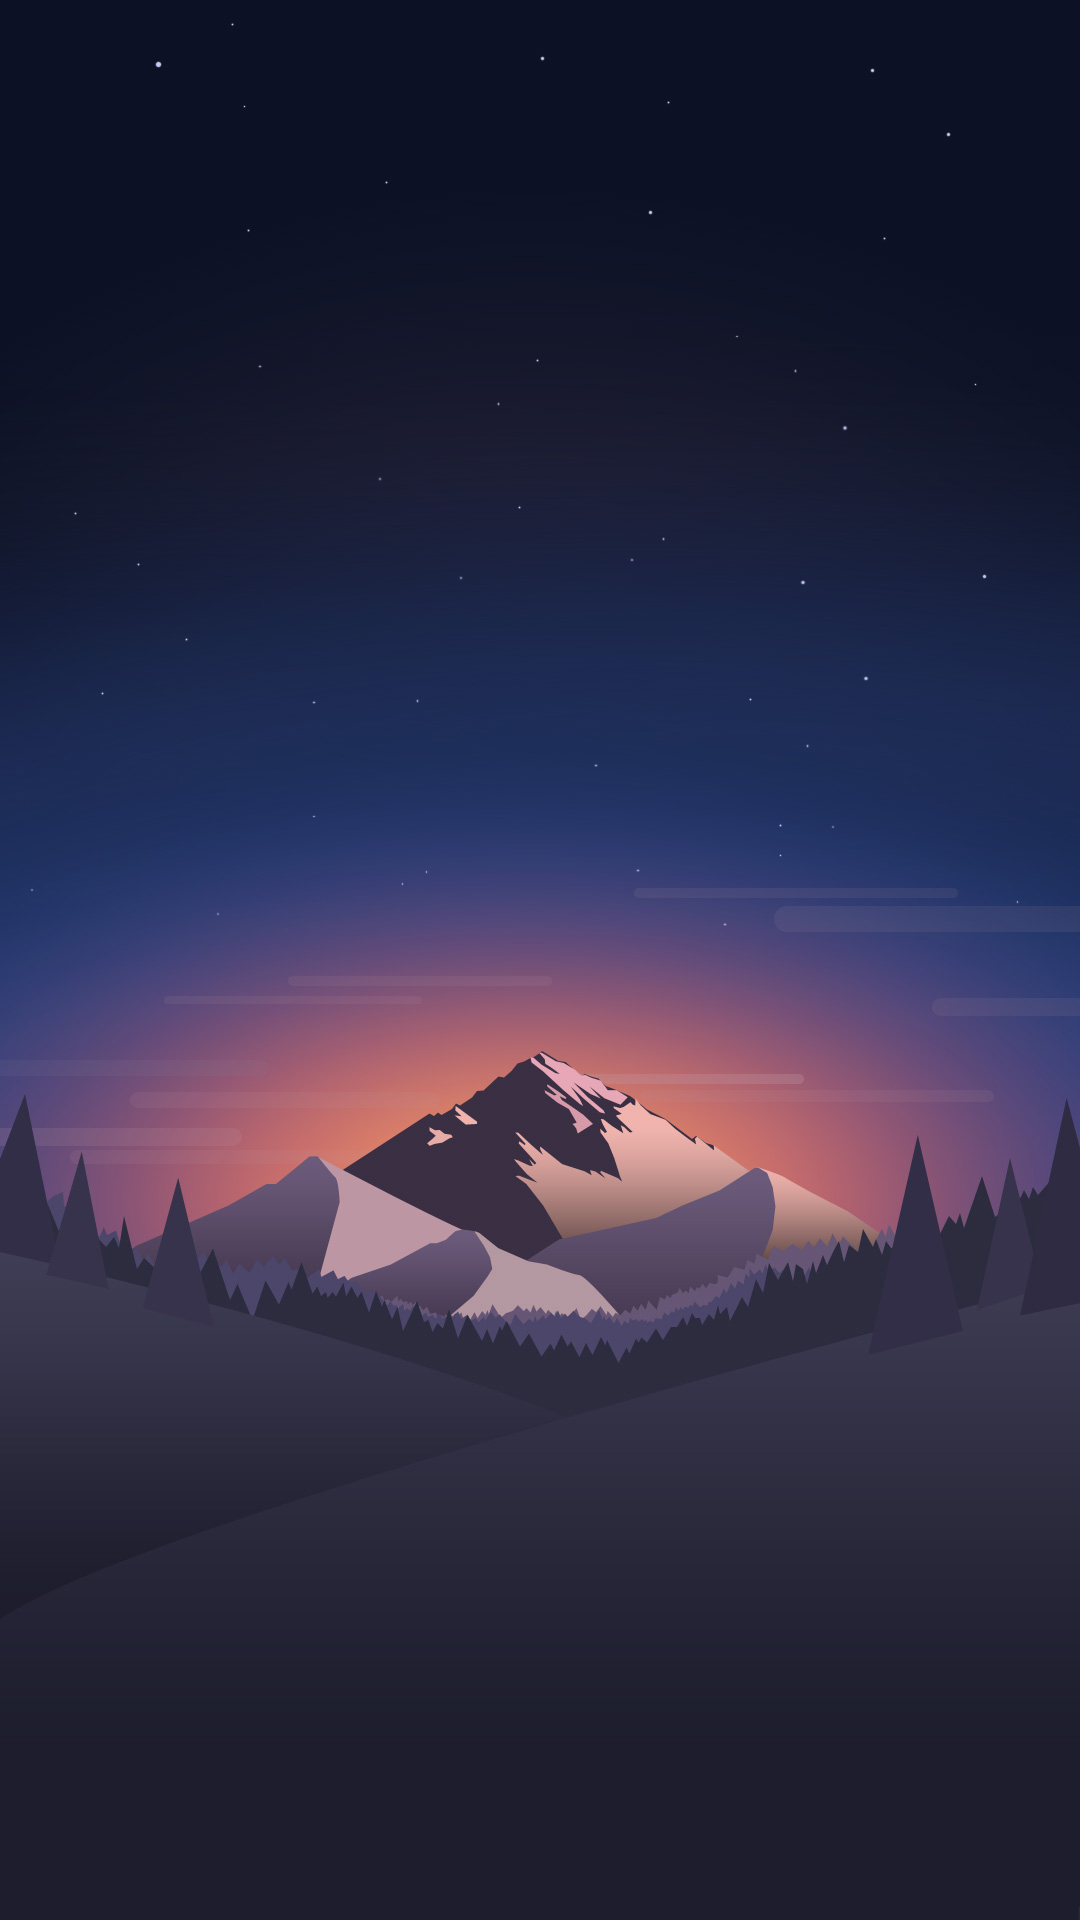 Low Poly Wallpapers (Desk & Phone) Low poly, Desks and